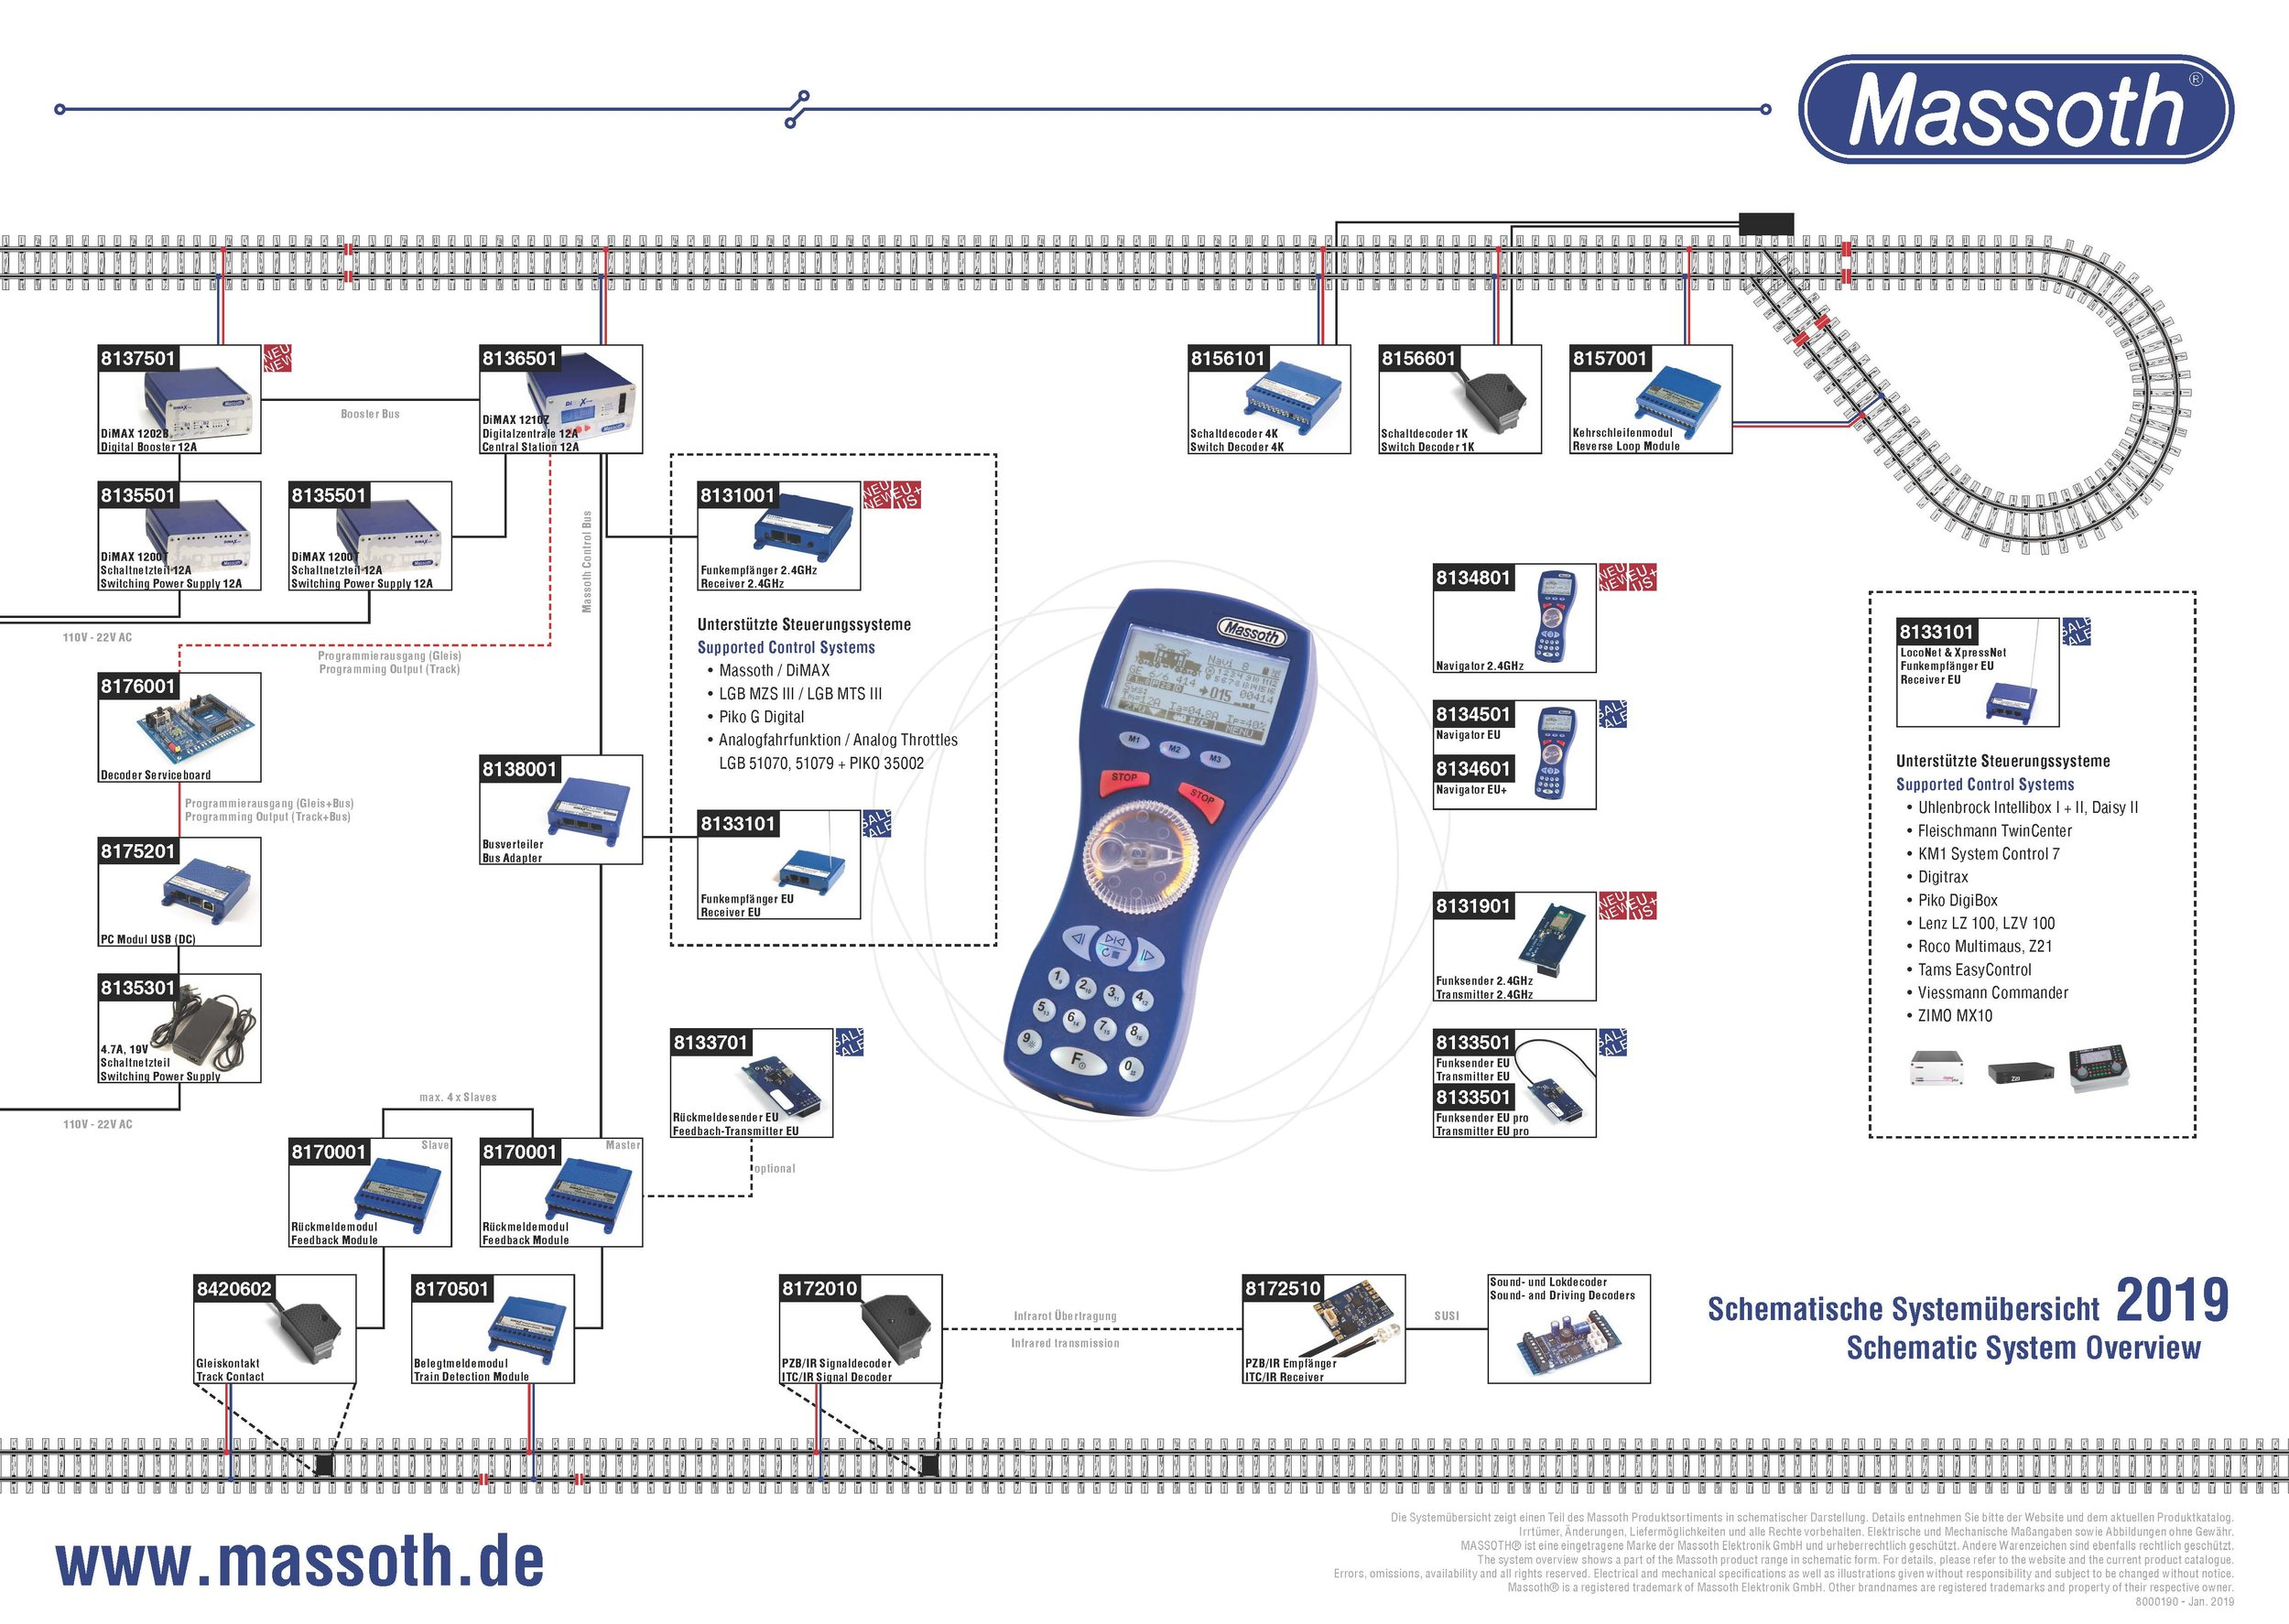 Massoth System Overview 2019